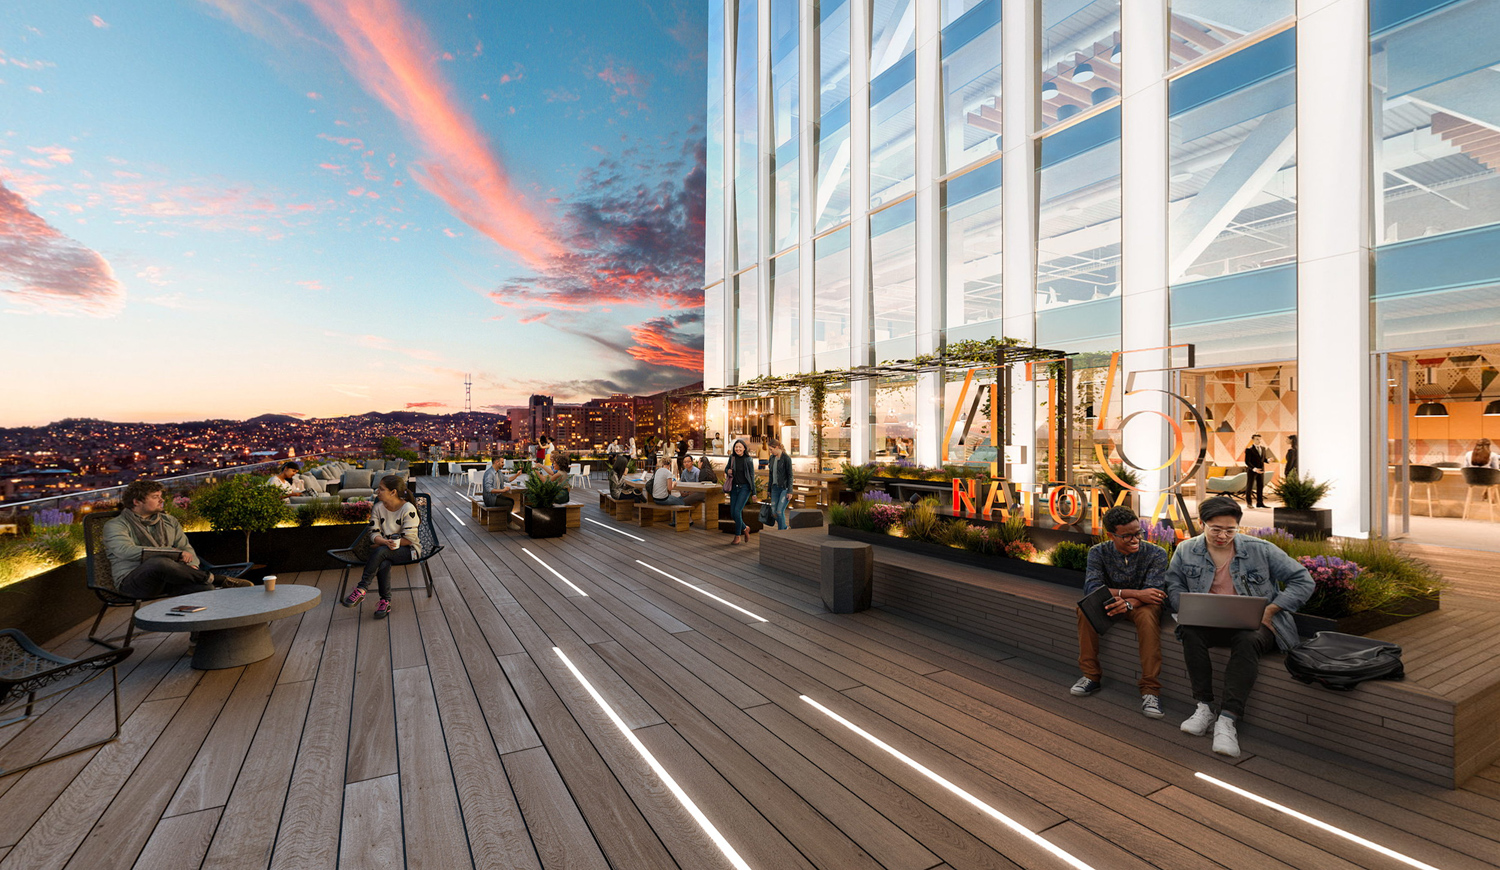 5M 415 Natoma 10th Floor Terrace, rendering by Brookfield Properties and Steelblue